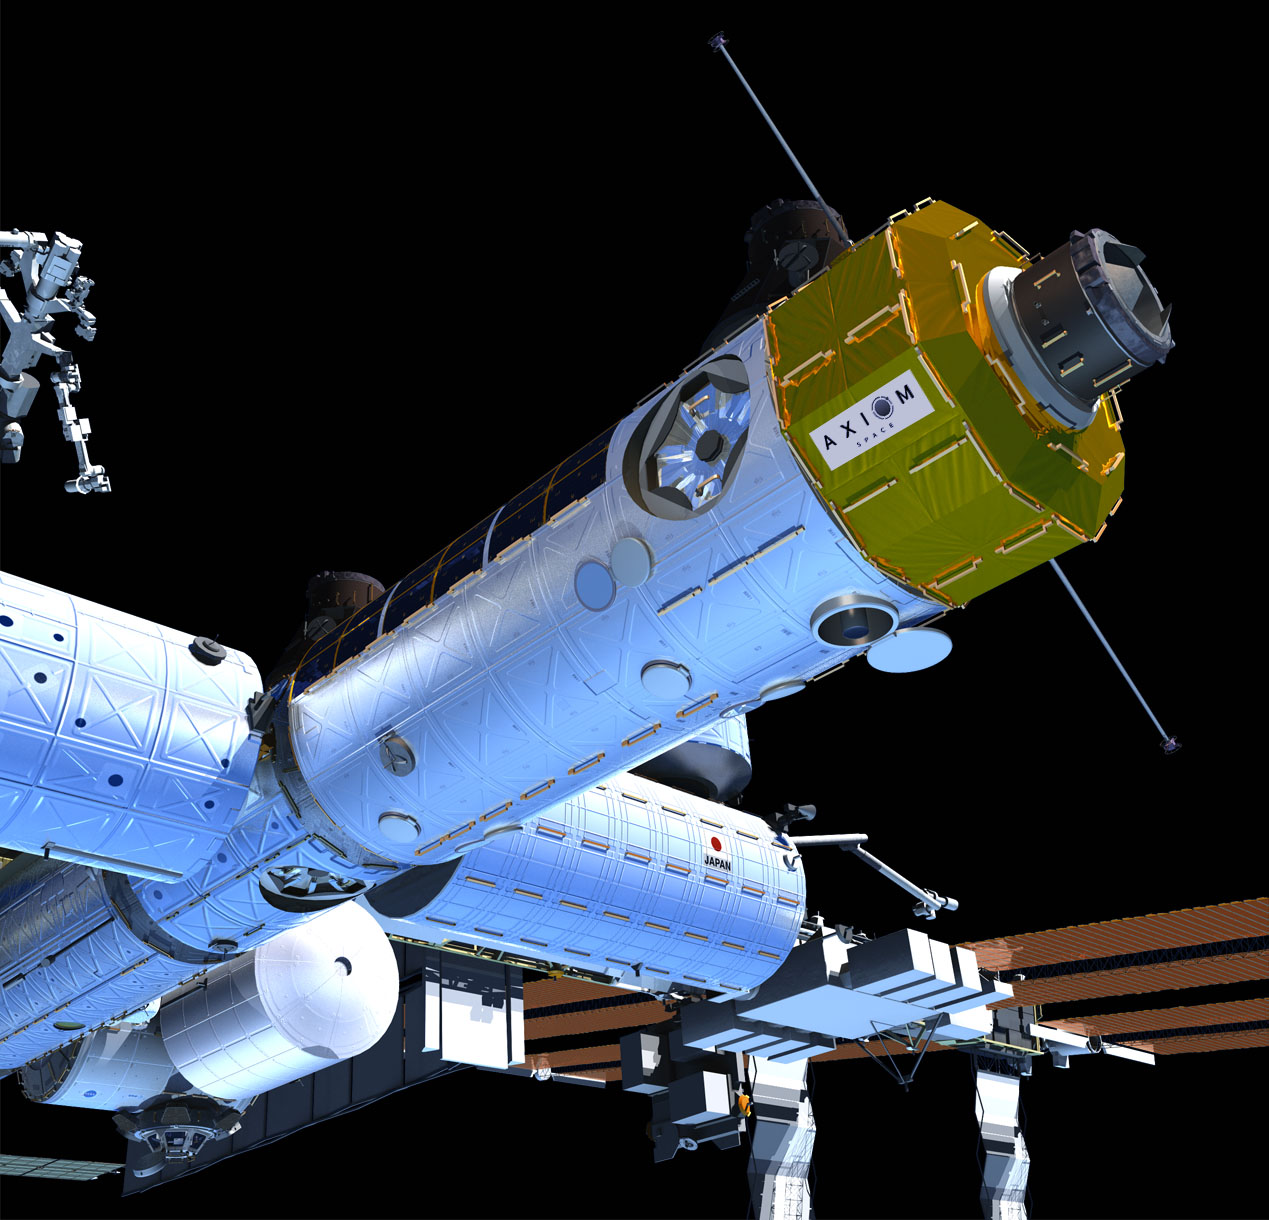 The Axiom Module will provide three new ports to the ISS. Image via Axiom.